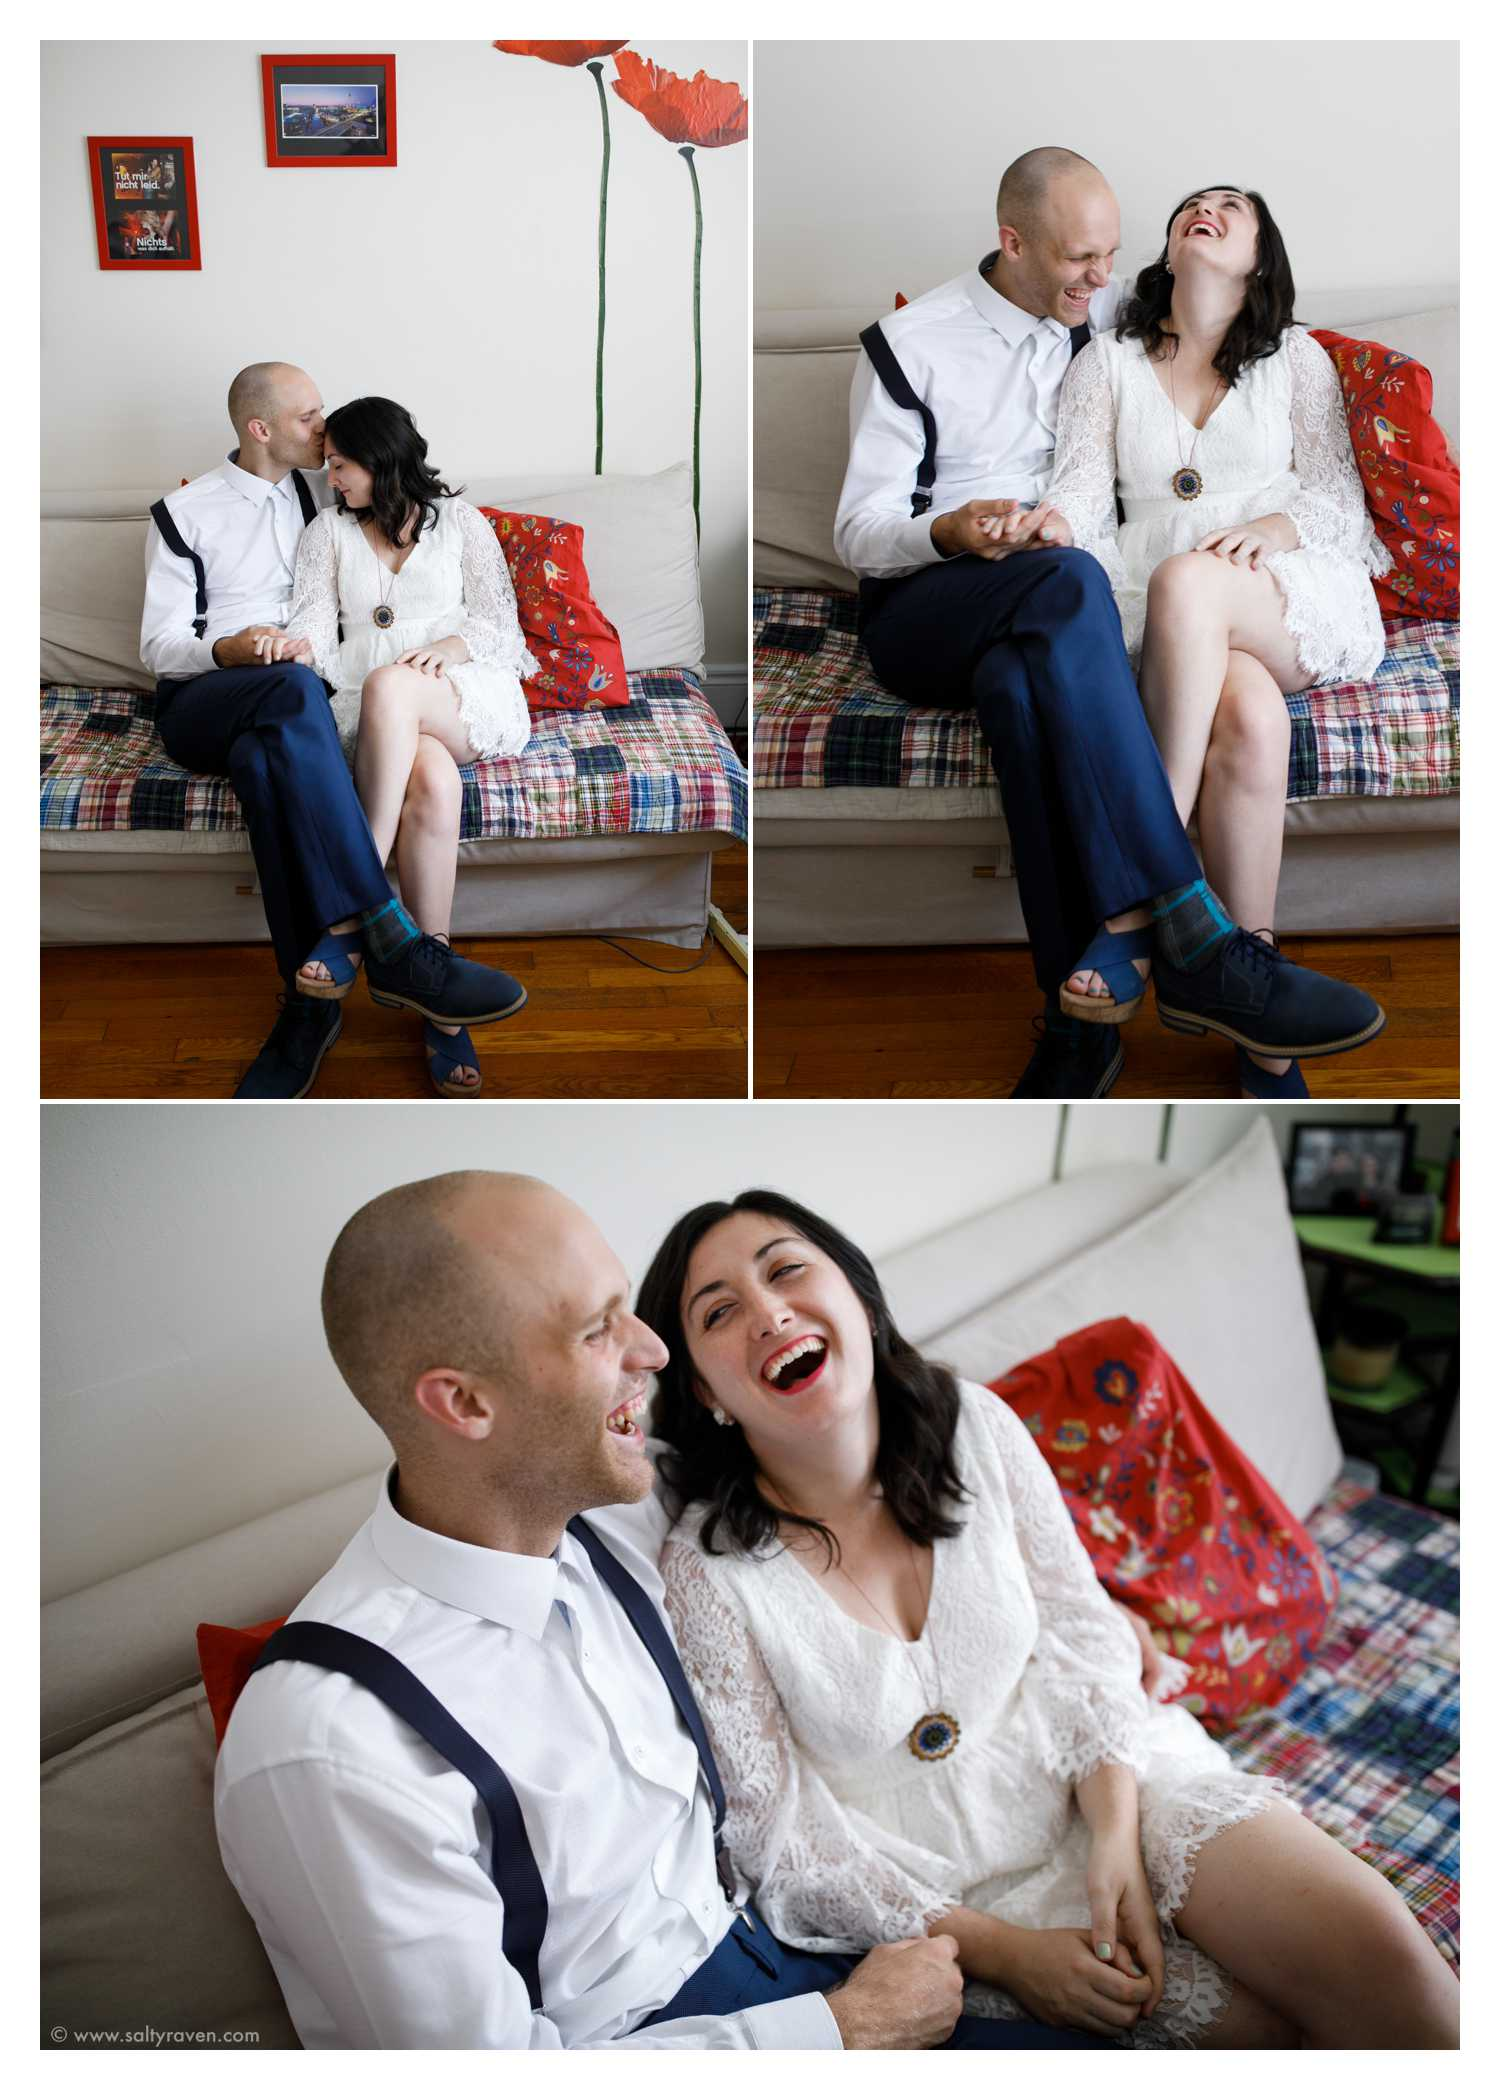 The couple relaxes on their couch at home before heading to Cambridge City Hall to get married.